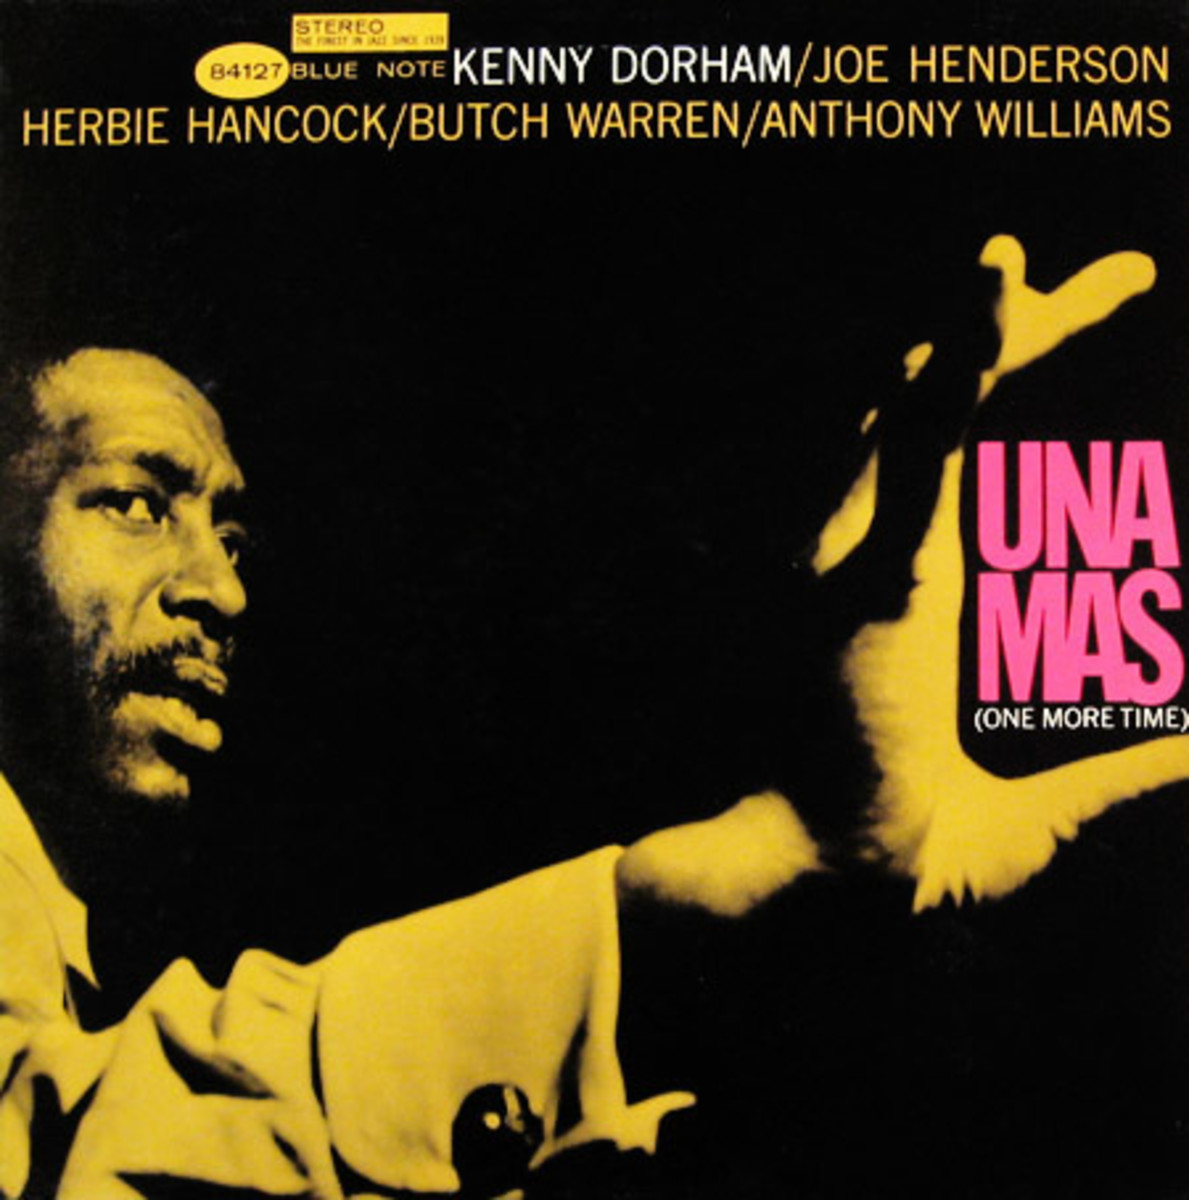 "Kenny Dorham ""Una Mas"" Blue Note Records 4127 12"" LP Vinyl Record (1963) Album Cover Design by Reid Miles, Photo by Francis Wolff"